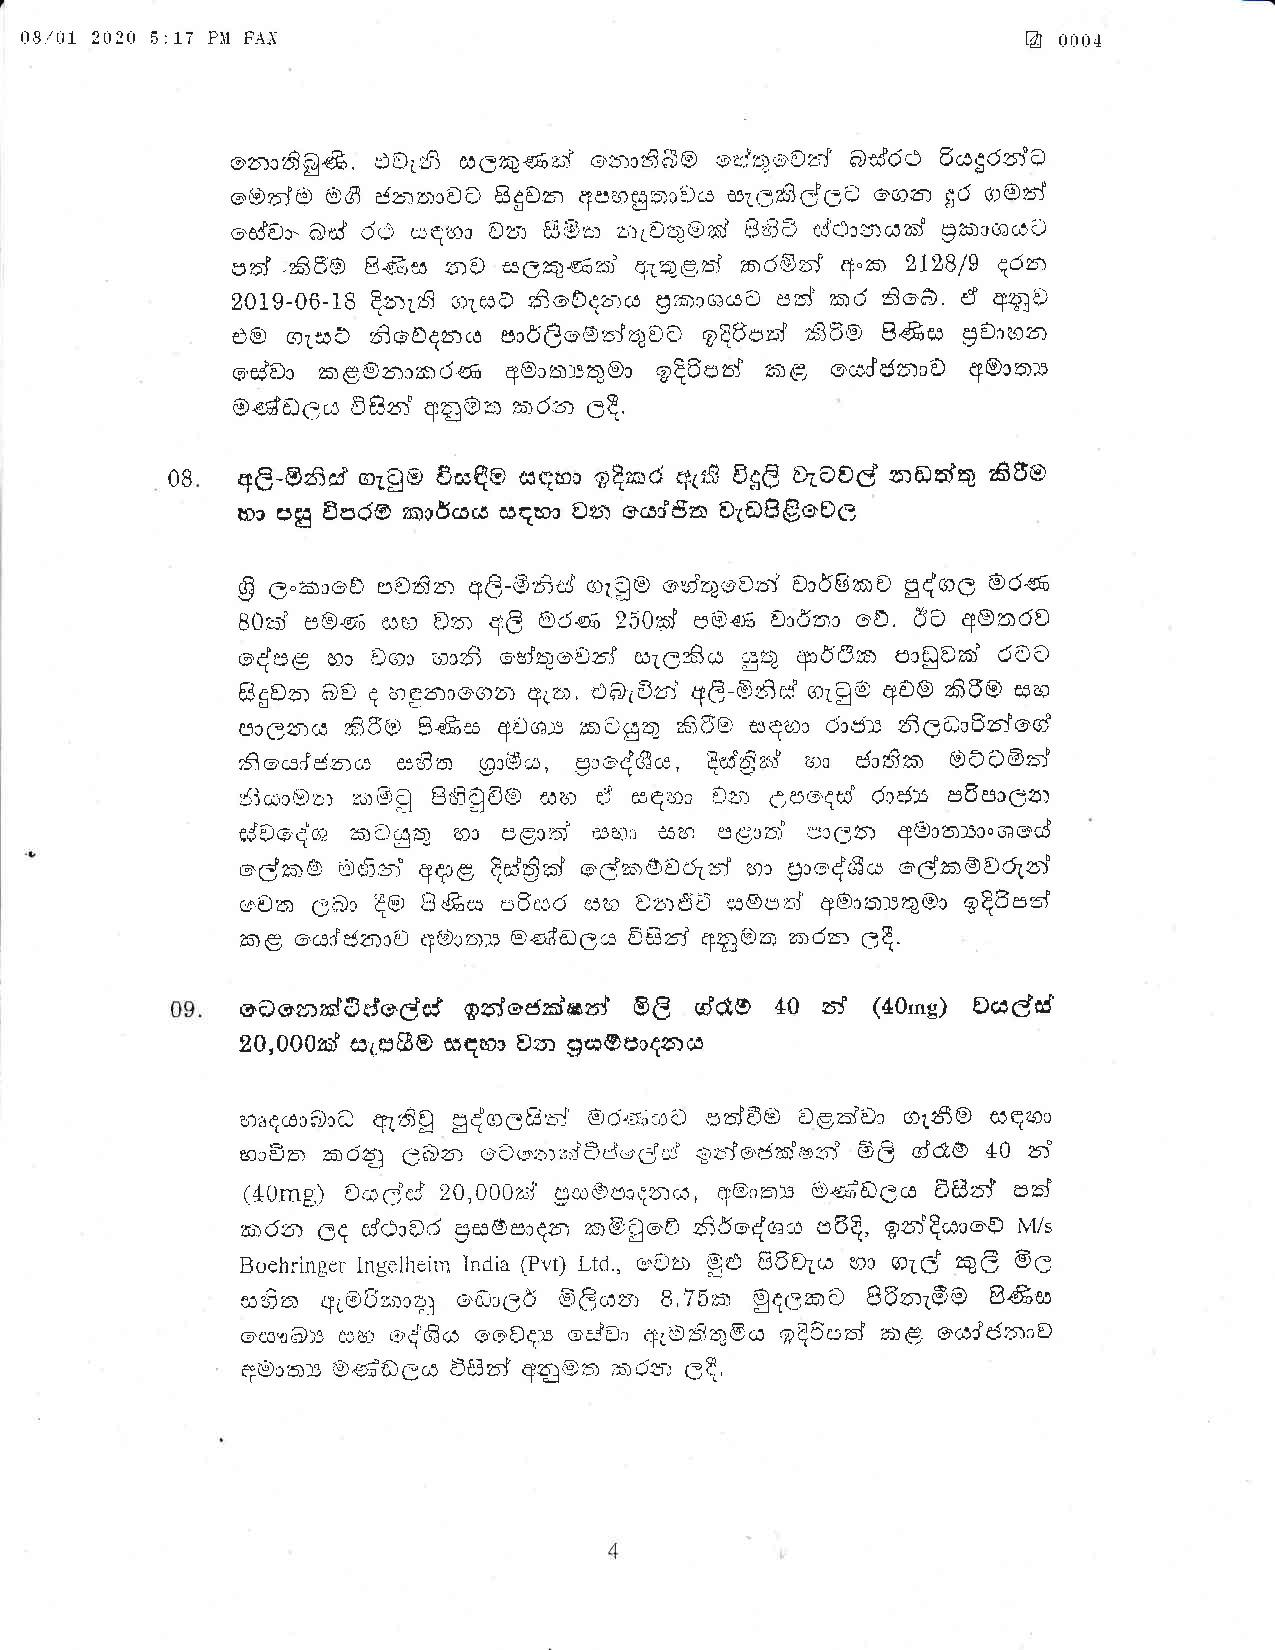 Cabinet Decision on 08.01.2020 page 004